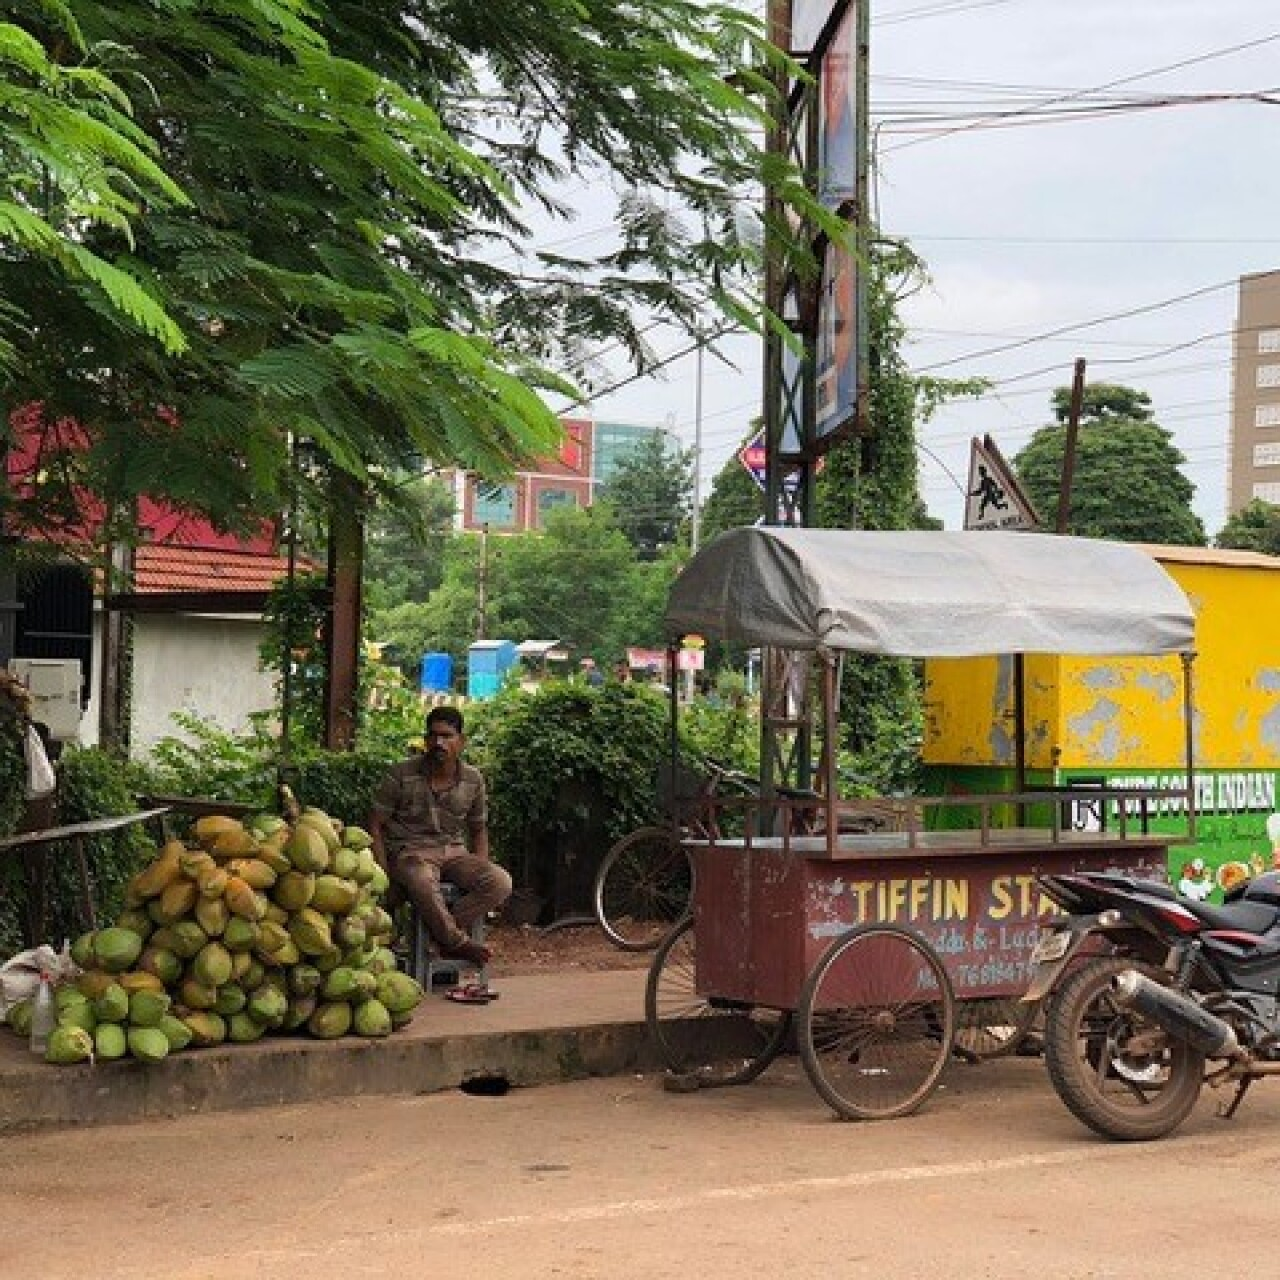 A man is sitting on a stool next to a stack of coconuts on a sidewalk. A cart and motorcycle sit in the street.